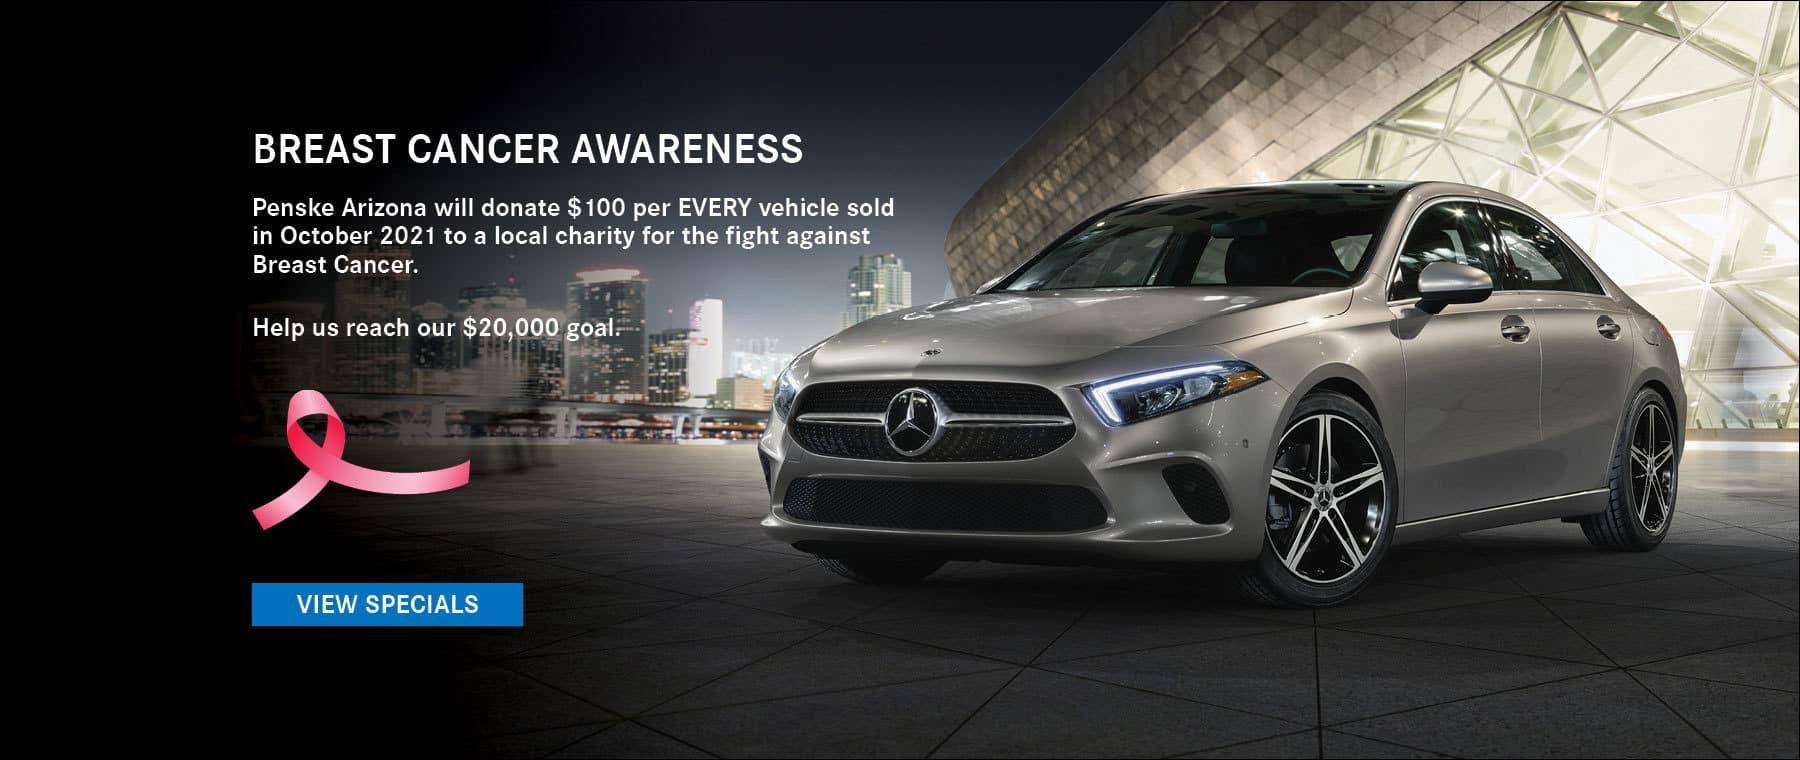 Penske AZ will donate $100 per every vehicle sold in October 2021 to a local charity for the fight against breast cancer. Help us reach our $20,000 goal!